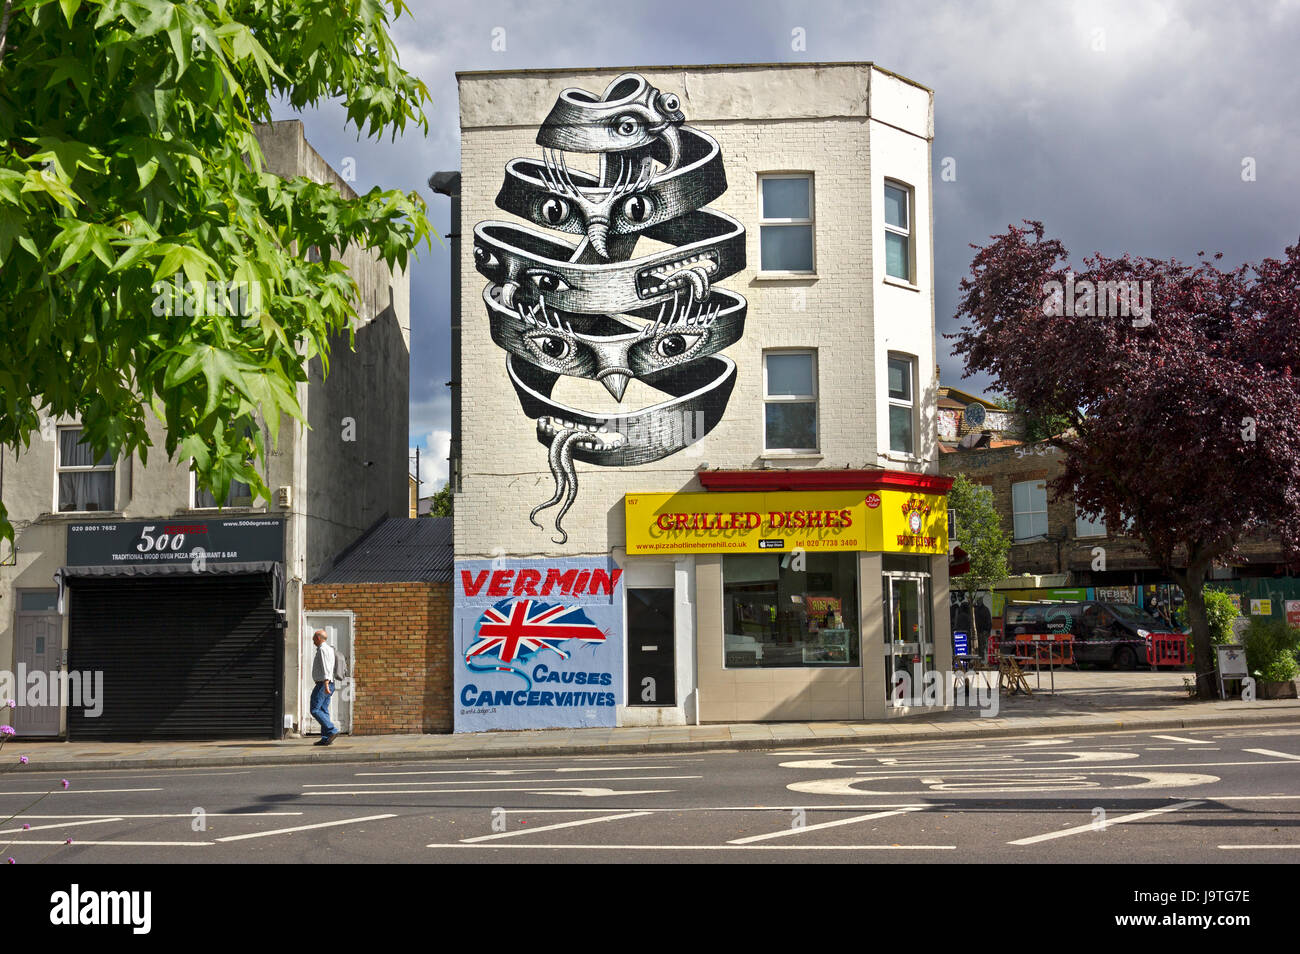 'VERMIN Causes Cancervatives' New political mural by street artist Artful Dodger on a wall in Herne Hill, - Stock Image